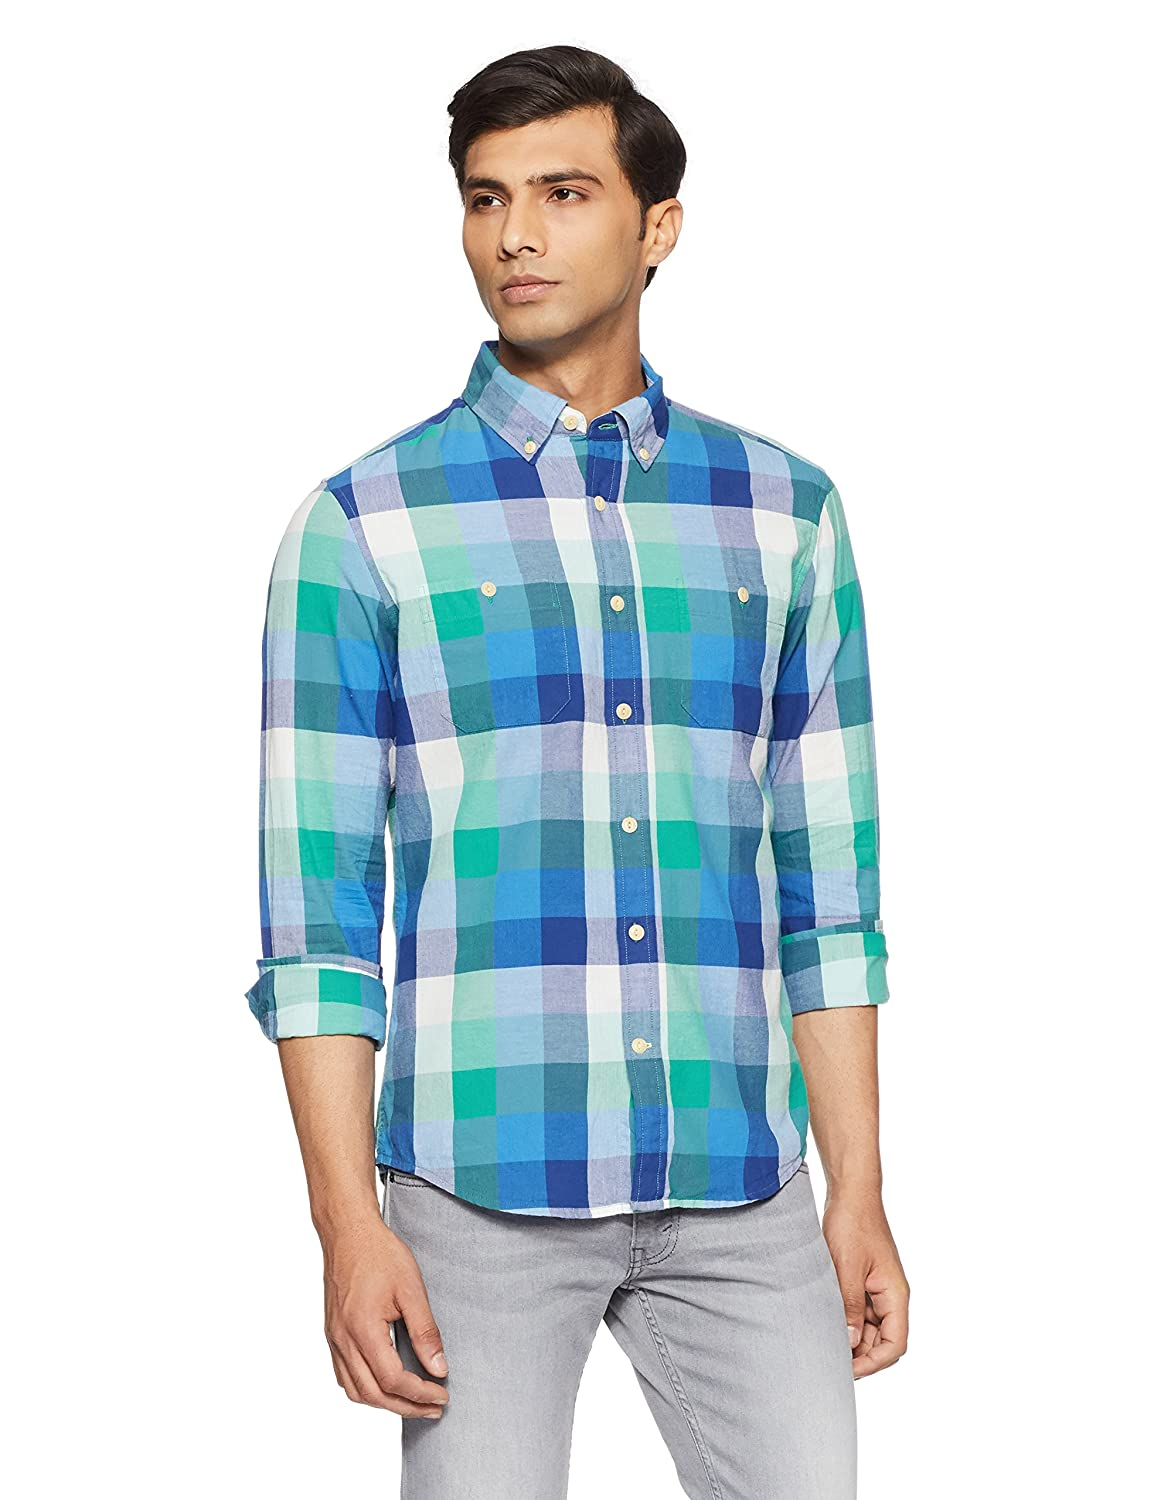 Tommy Hilfiger Mens Casual Shirt Amazon Clothing Accessories